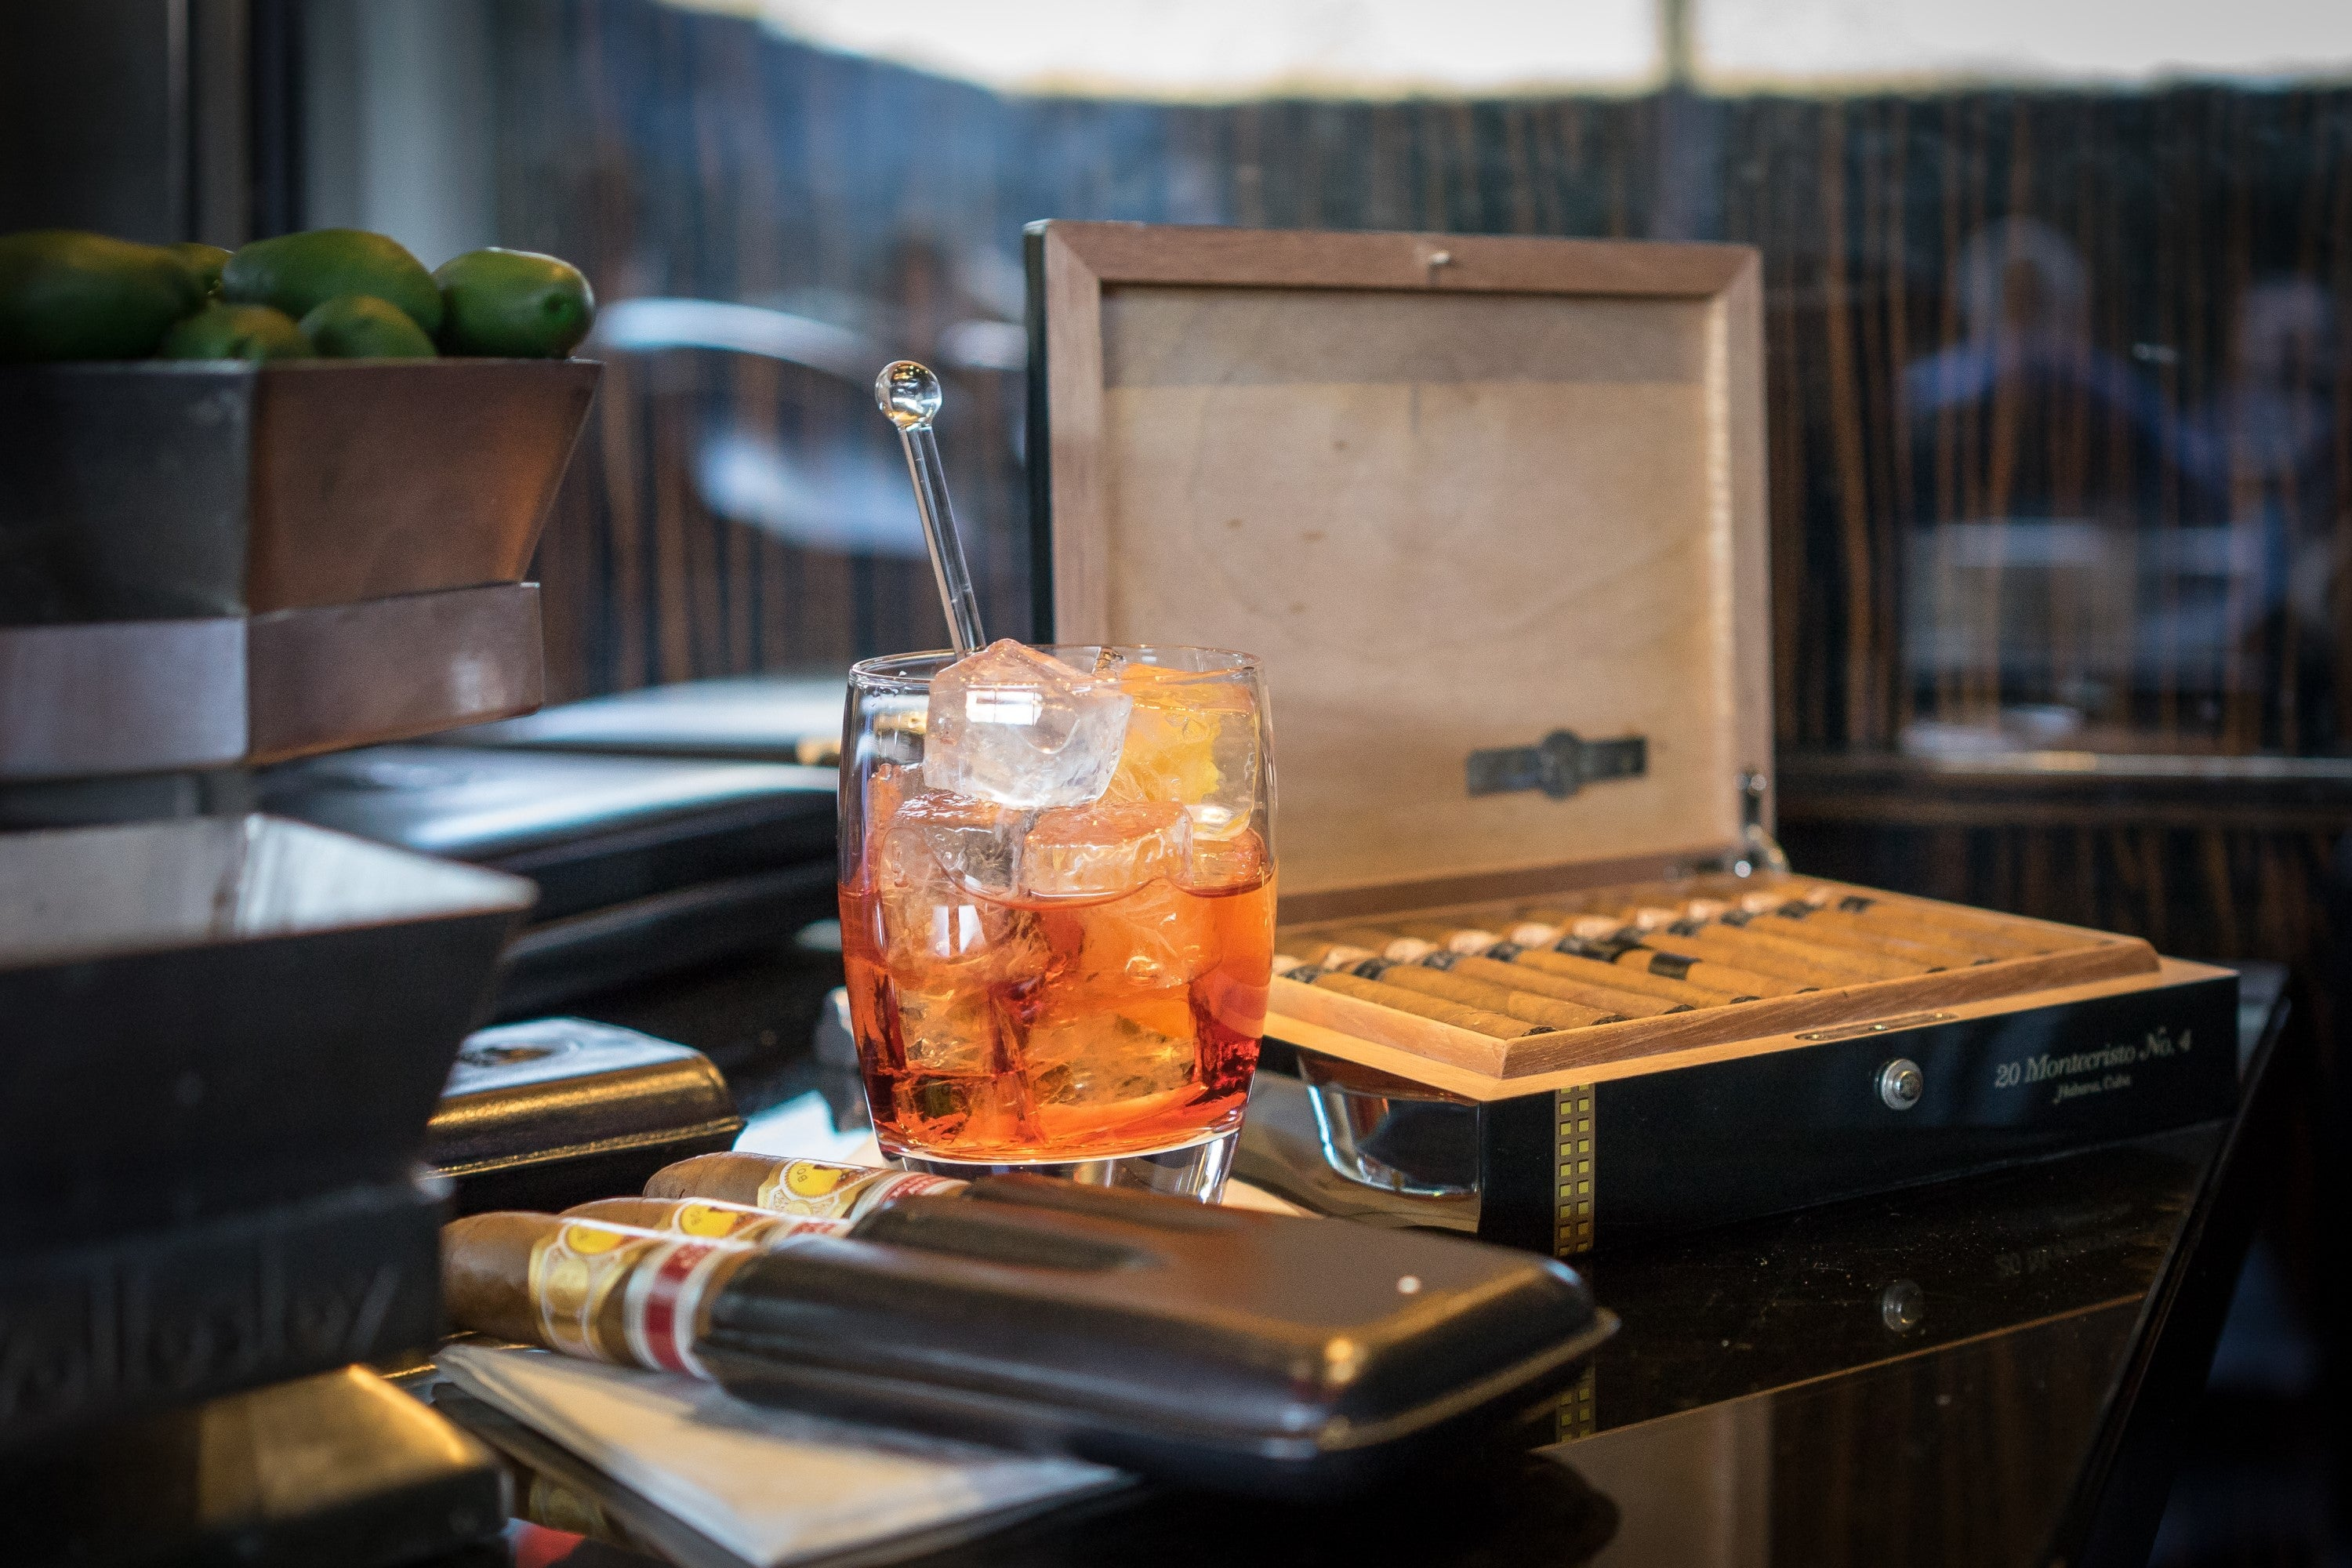 A Cuban cigar lounge is perfectly finished off with the addition of a Negroni